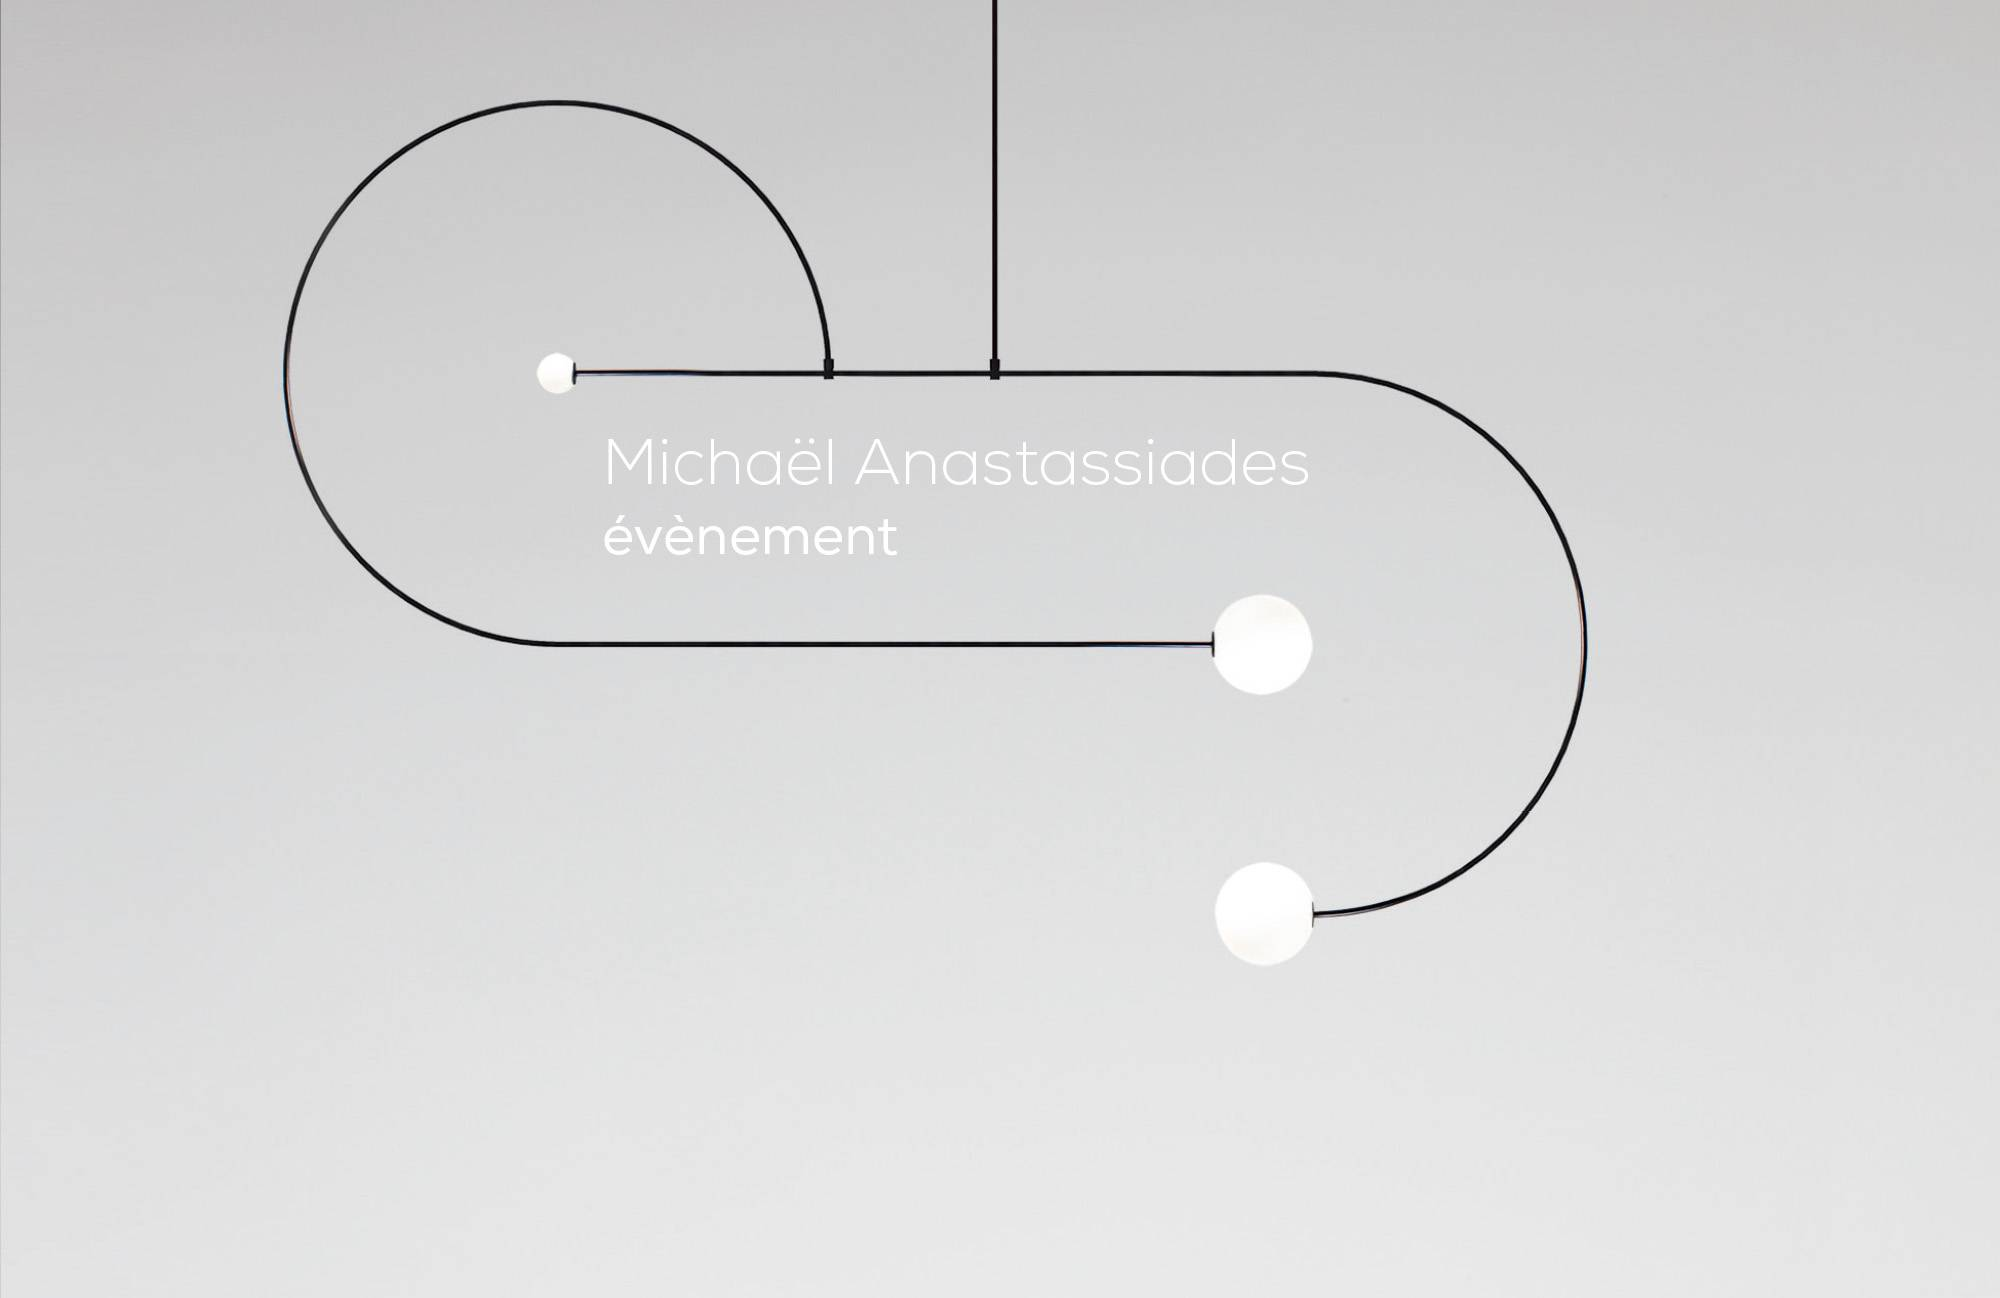 Michaël Anastassiades